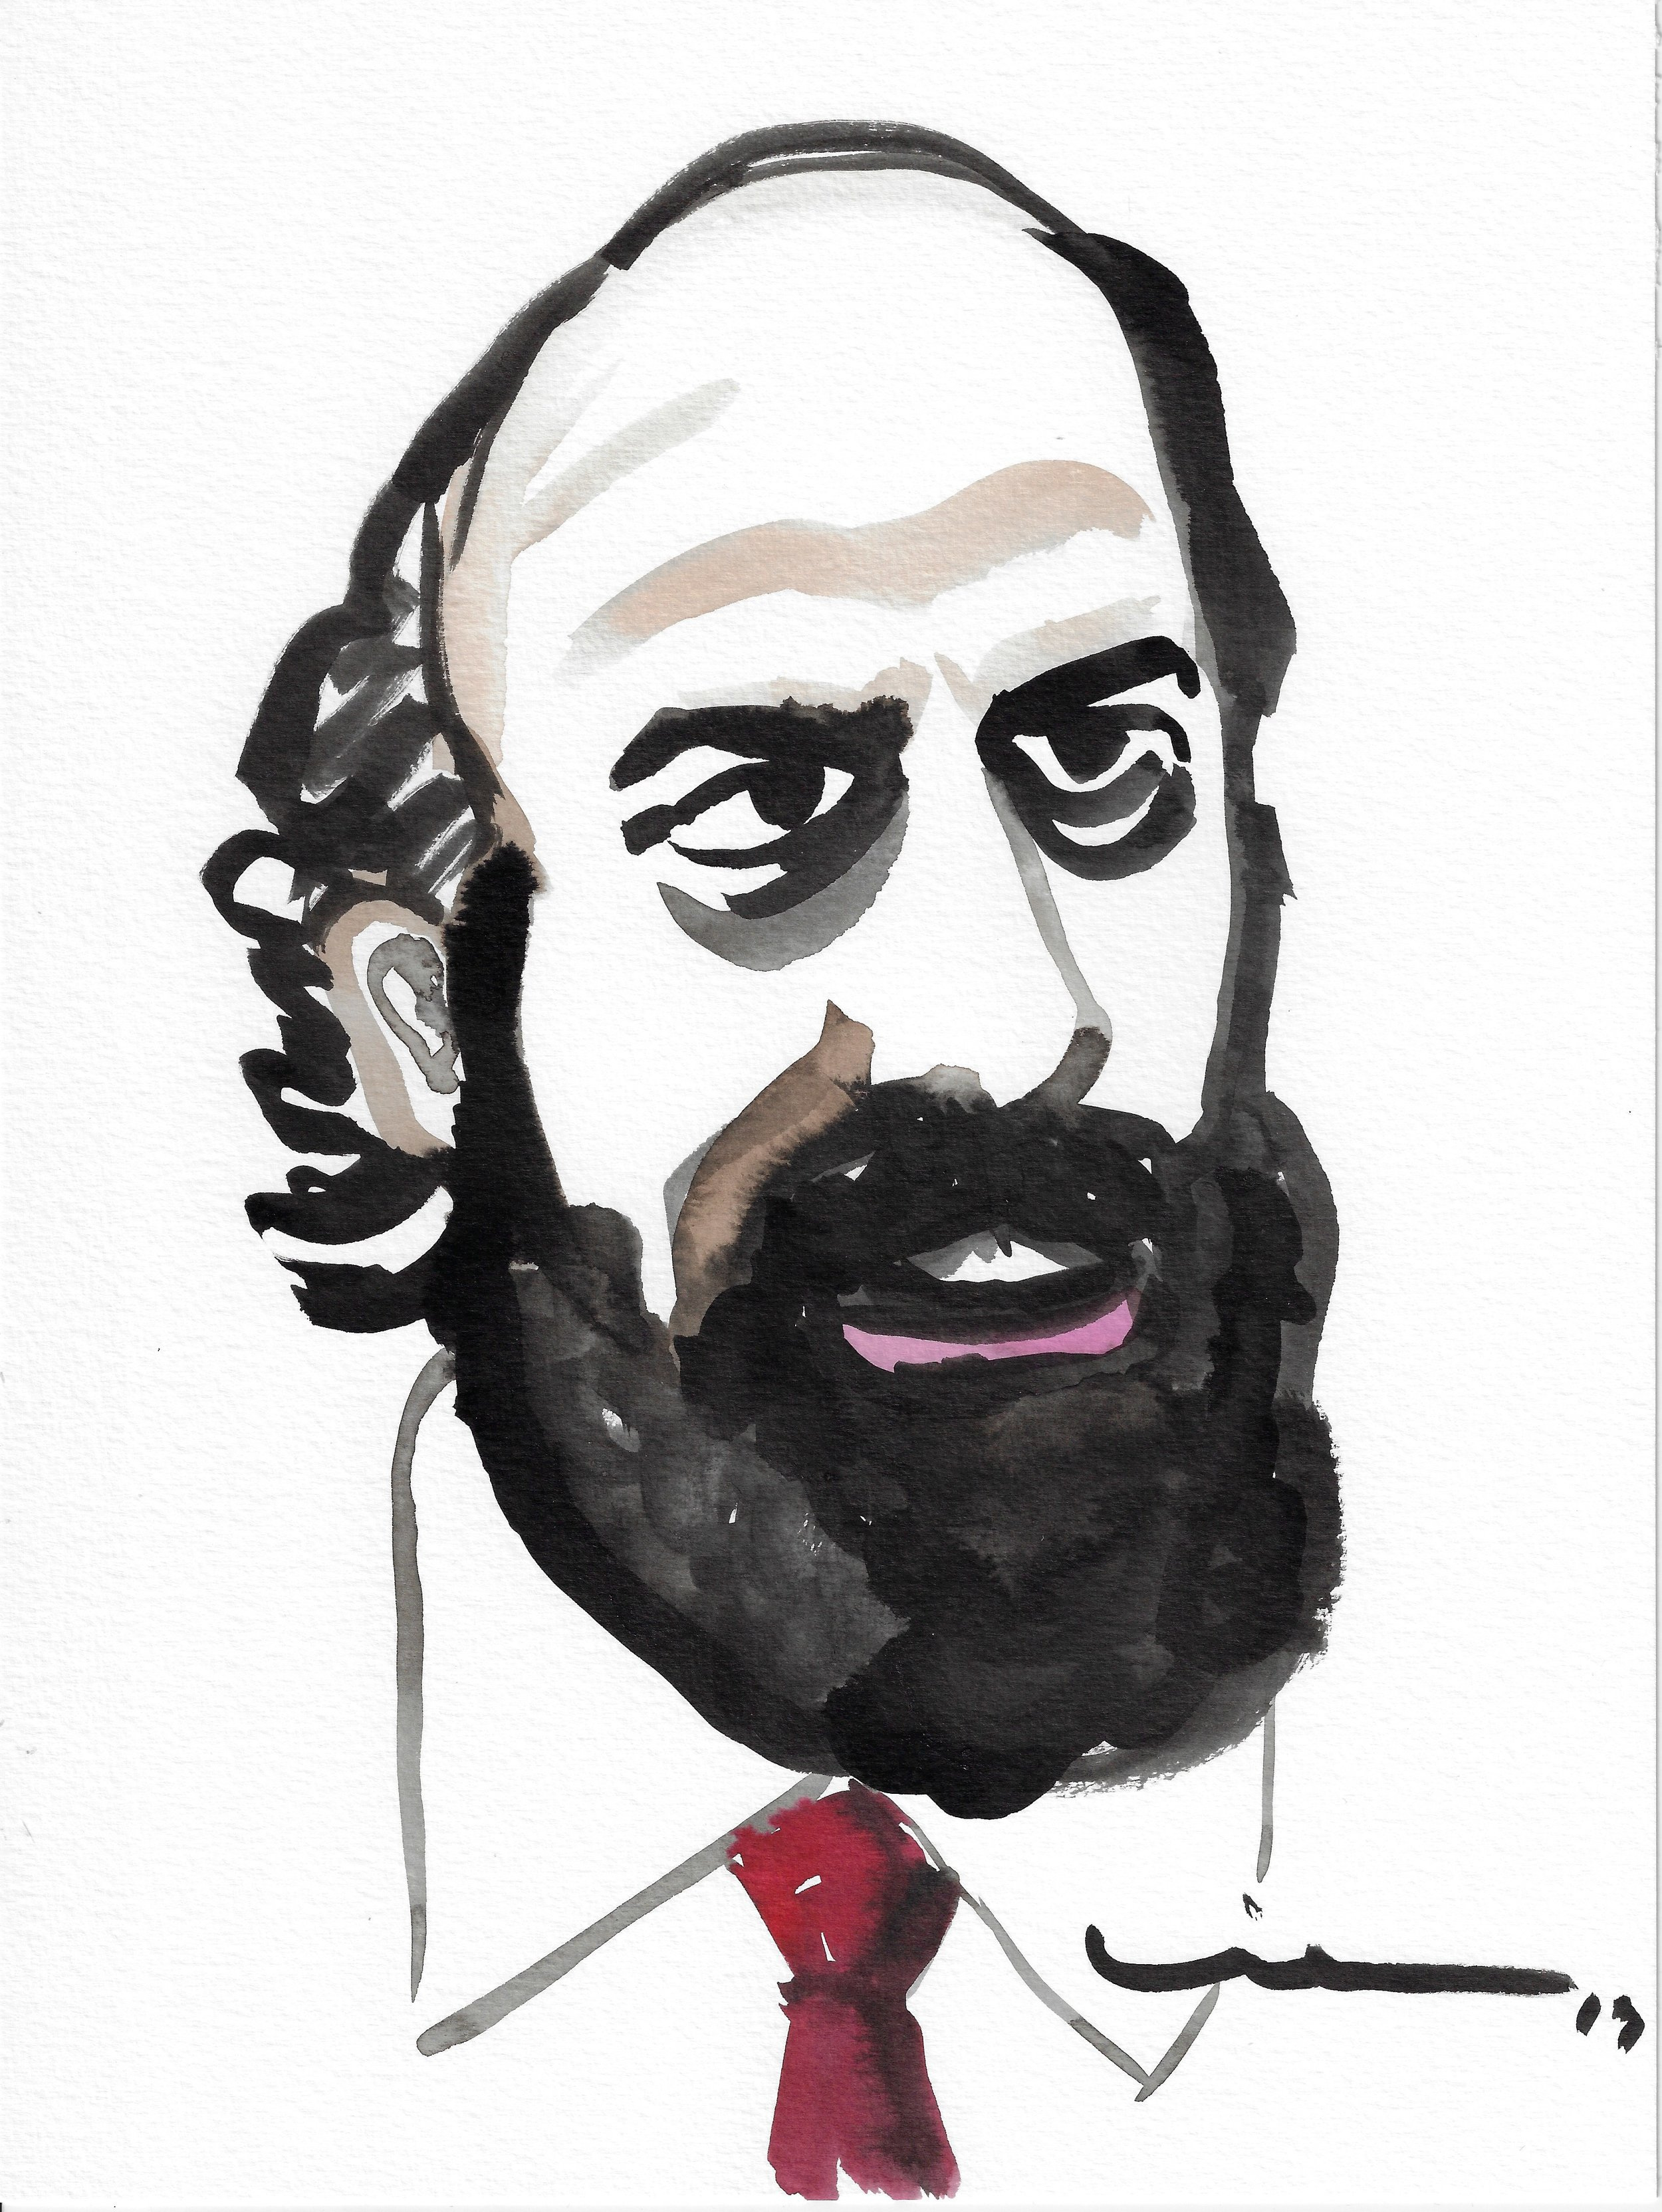 Martin, Brett Gelman's character on Fleabag, Phoebe Waller-Bridge's series - Ink and watercolors on paper.